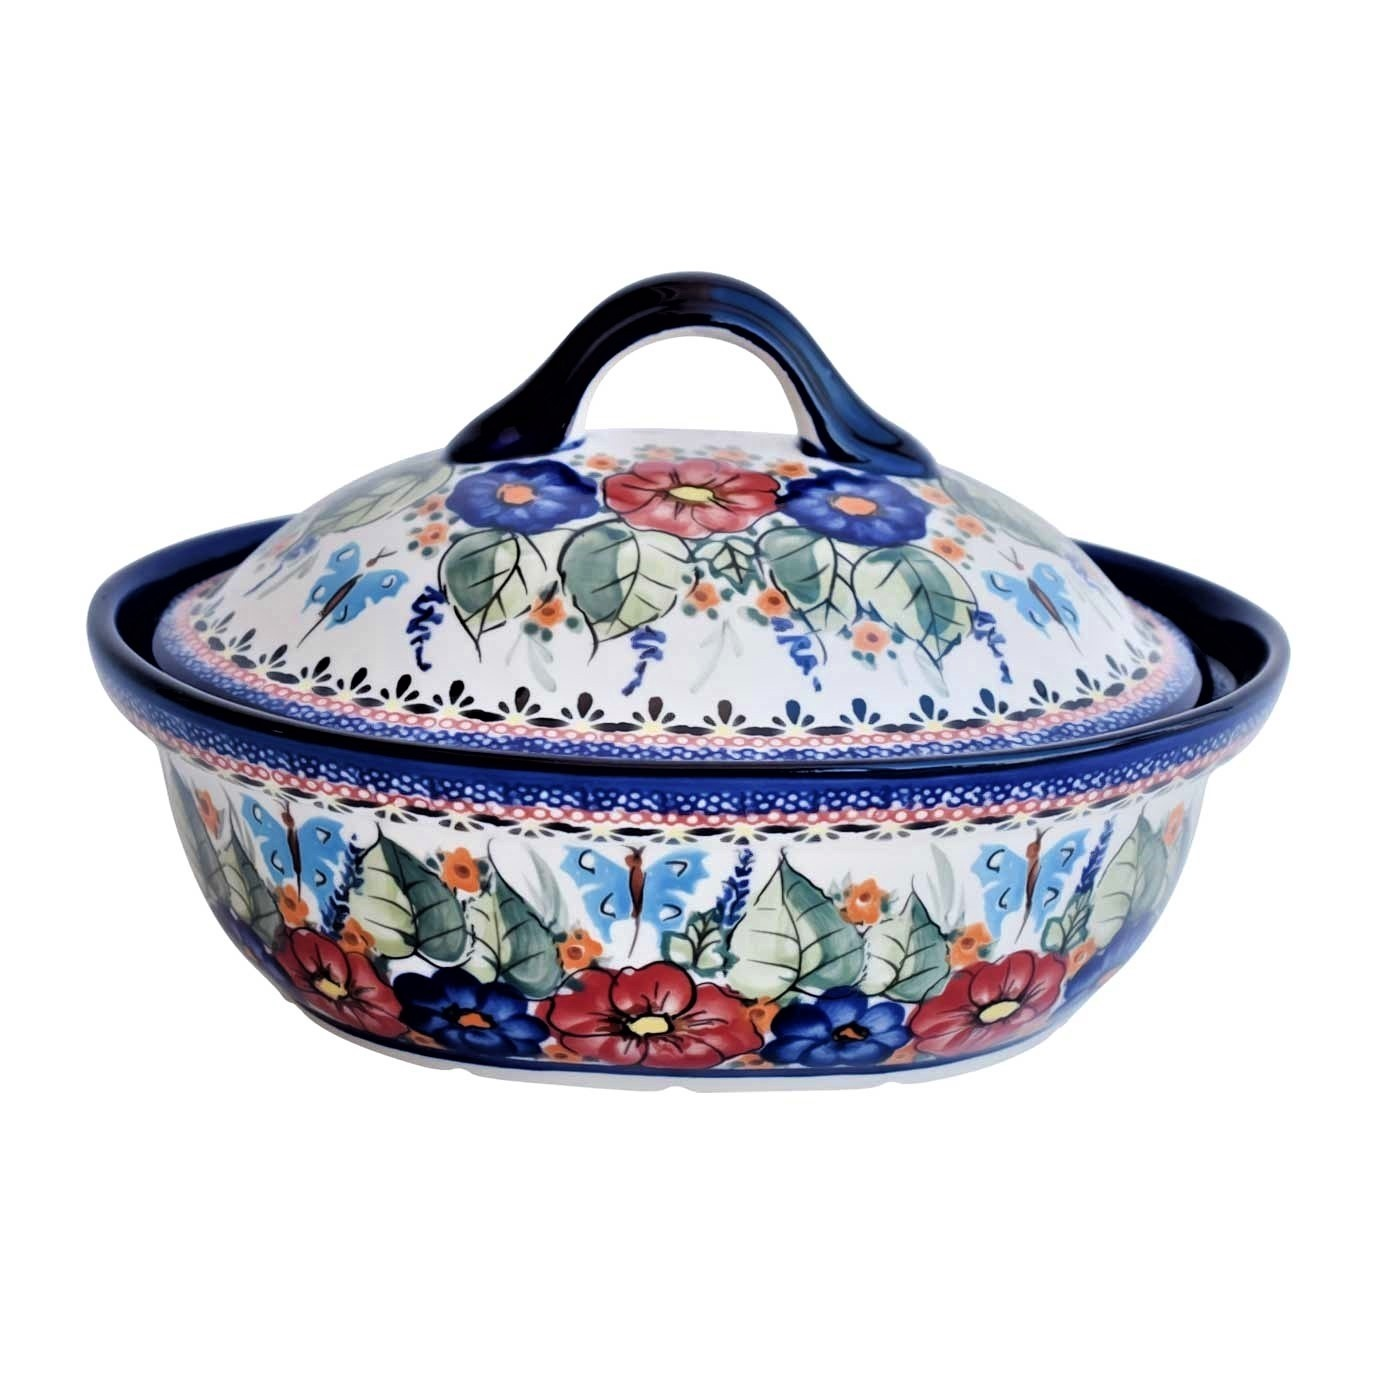 Pottery Avenue Stoneware Covered Casserole, 1.5 Liter - 1793-149AR Butterfly Merry Making